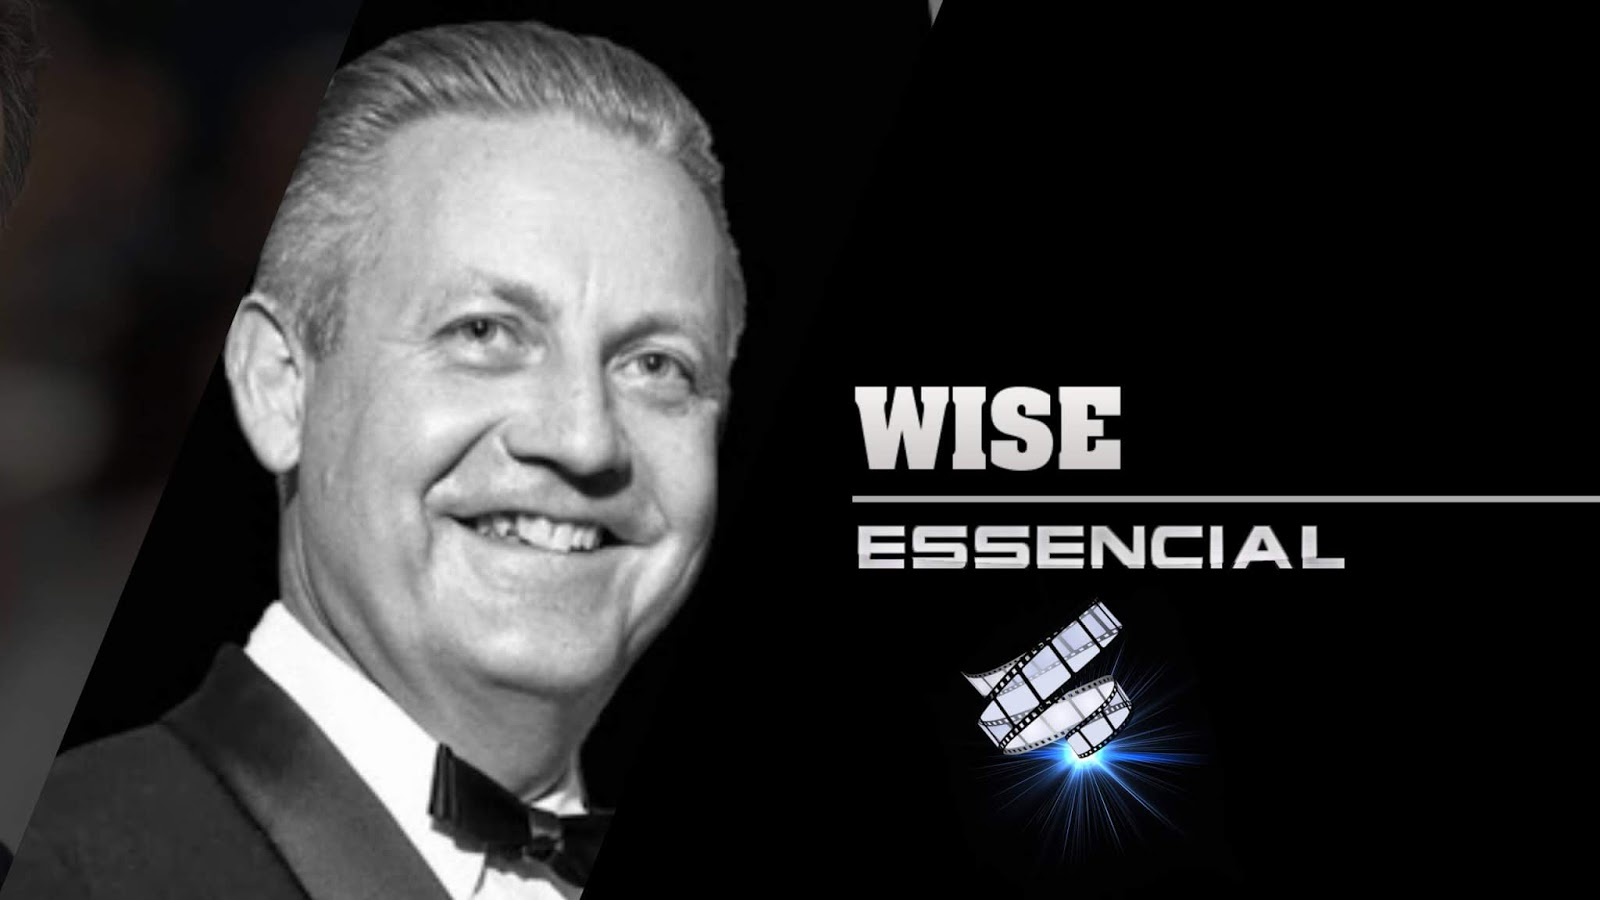 robert-wise-10-filmes-essenciais